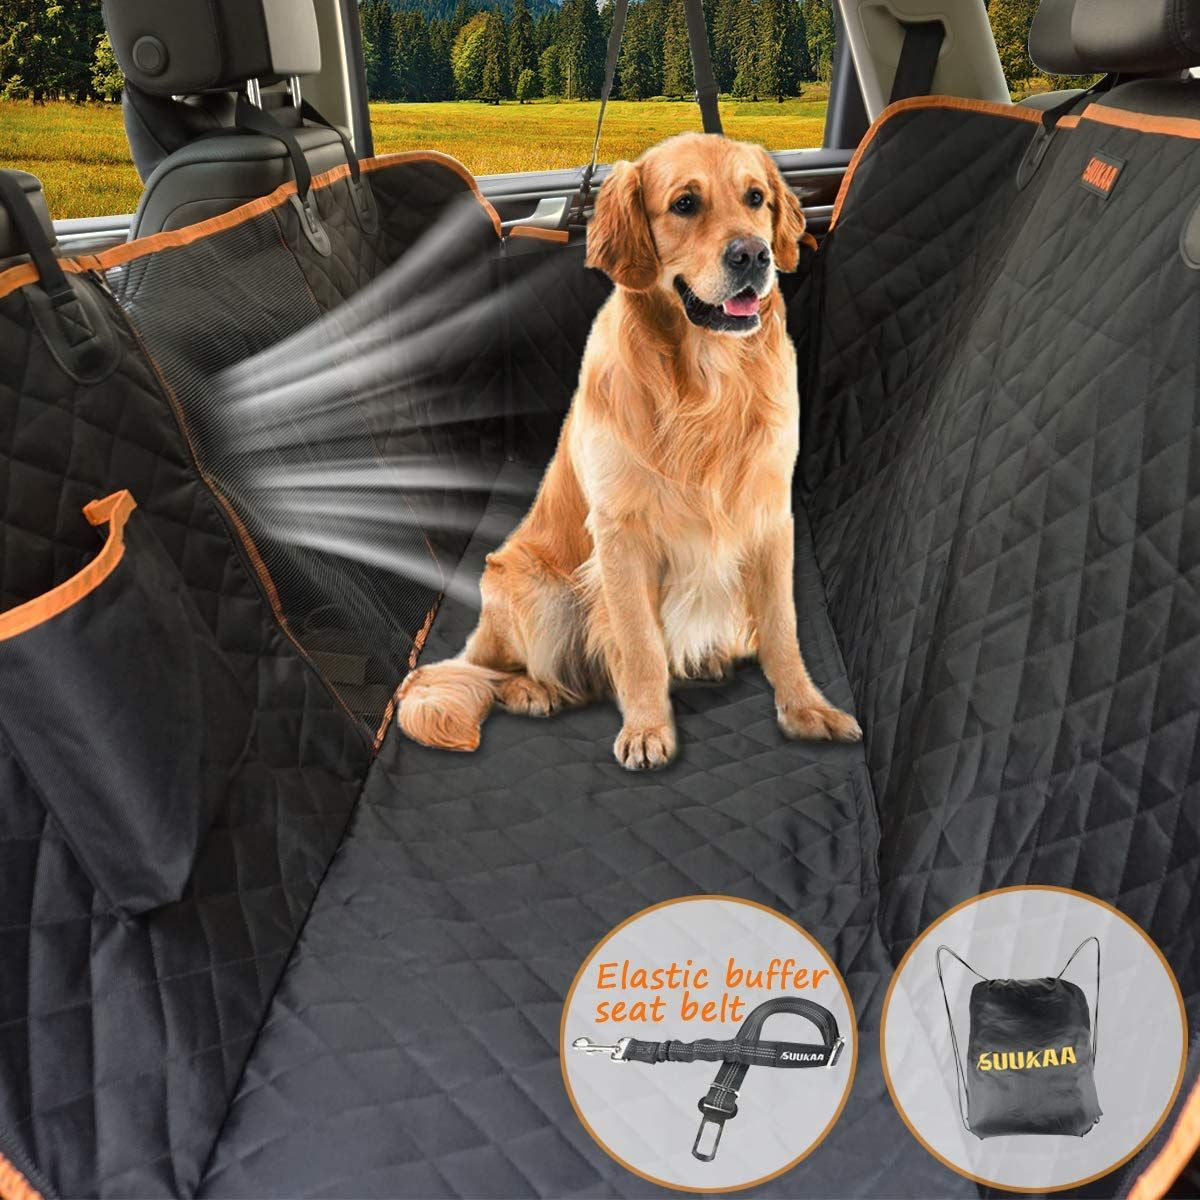 Waterproof Scratchproof Dog Seat Cover with Storage Bag Extra Wide Side Flaps Dog Front Seat Cover Nonslip Quilted Durable Pad for Cars Trucks and SUVs